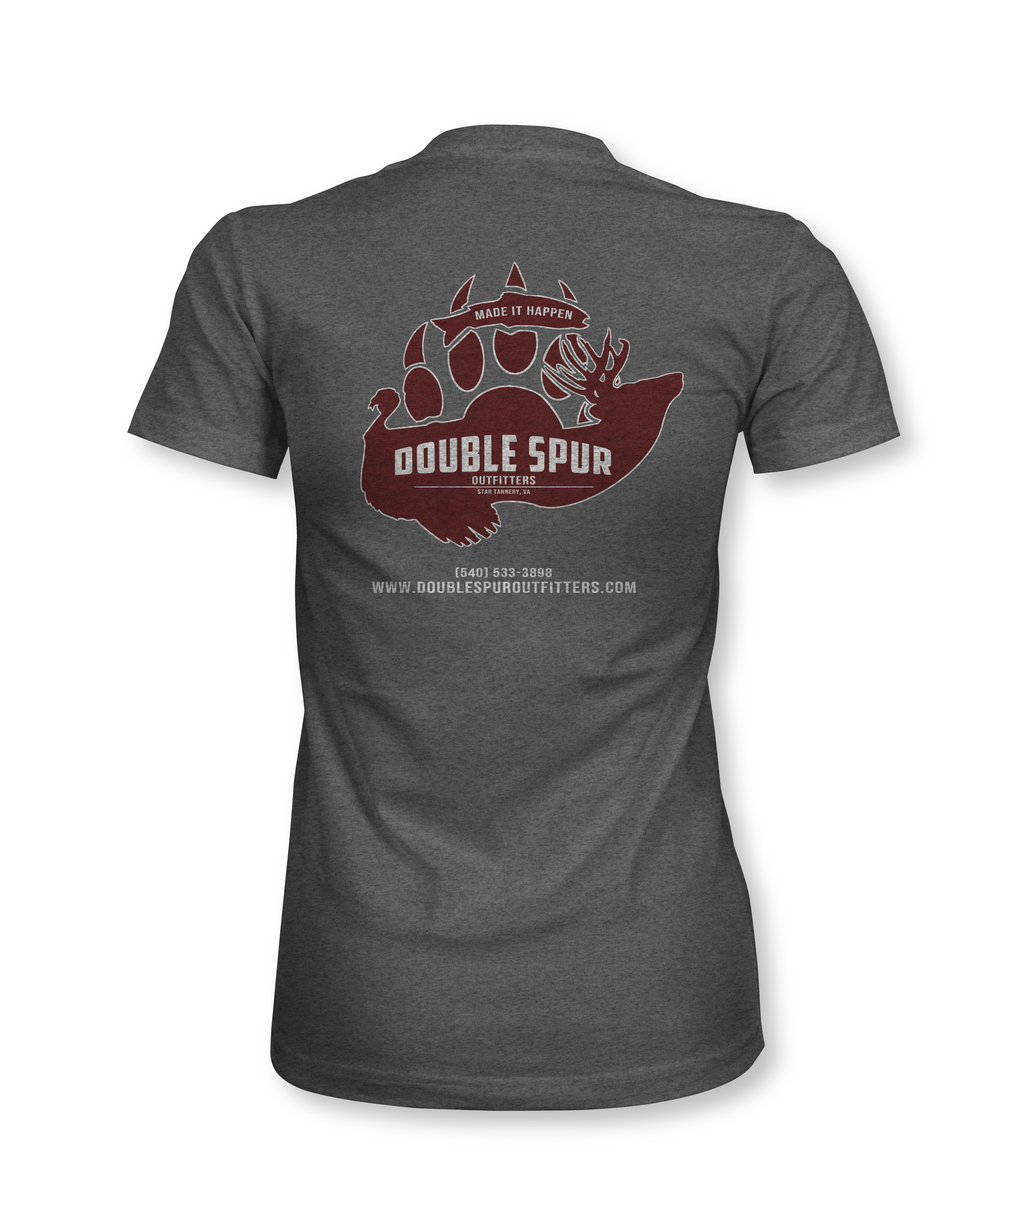 Double Spur Outfitters Solid - Custom - Women's Shirt - Proper Patriot